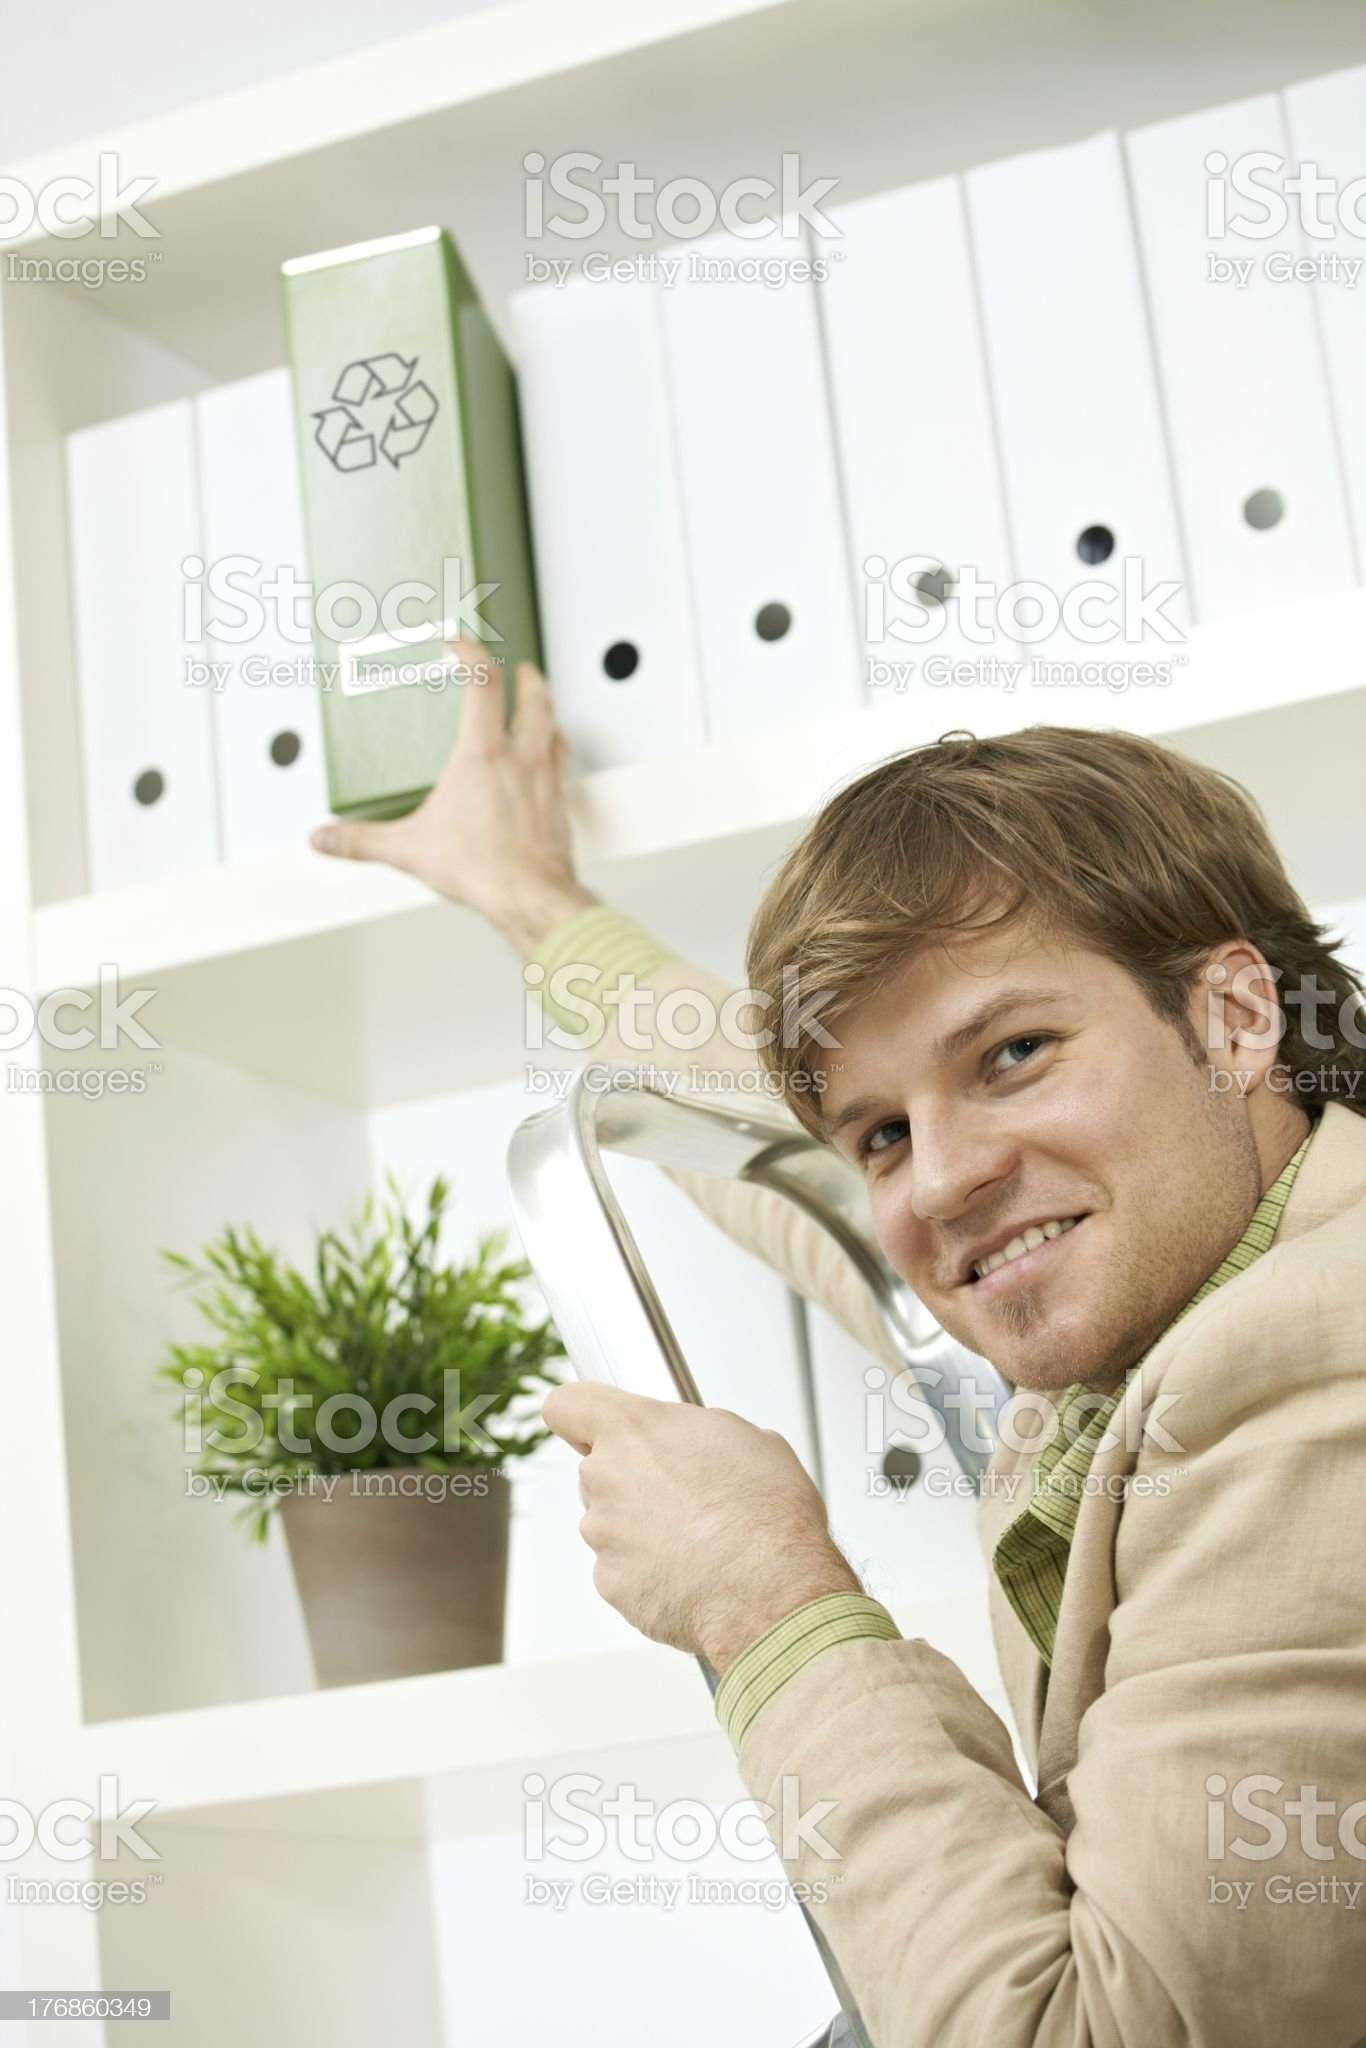 Businessman removing green folder from shelf royalty-free stock photo